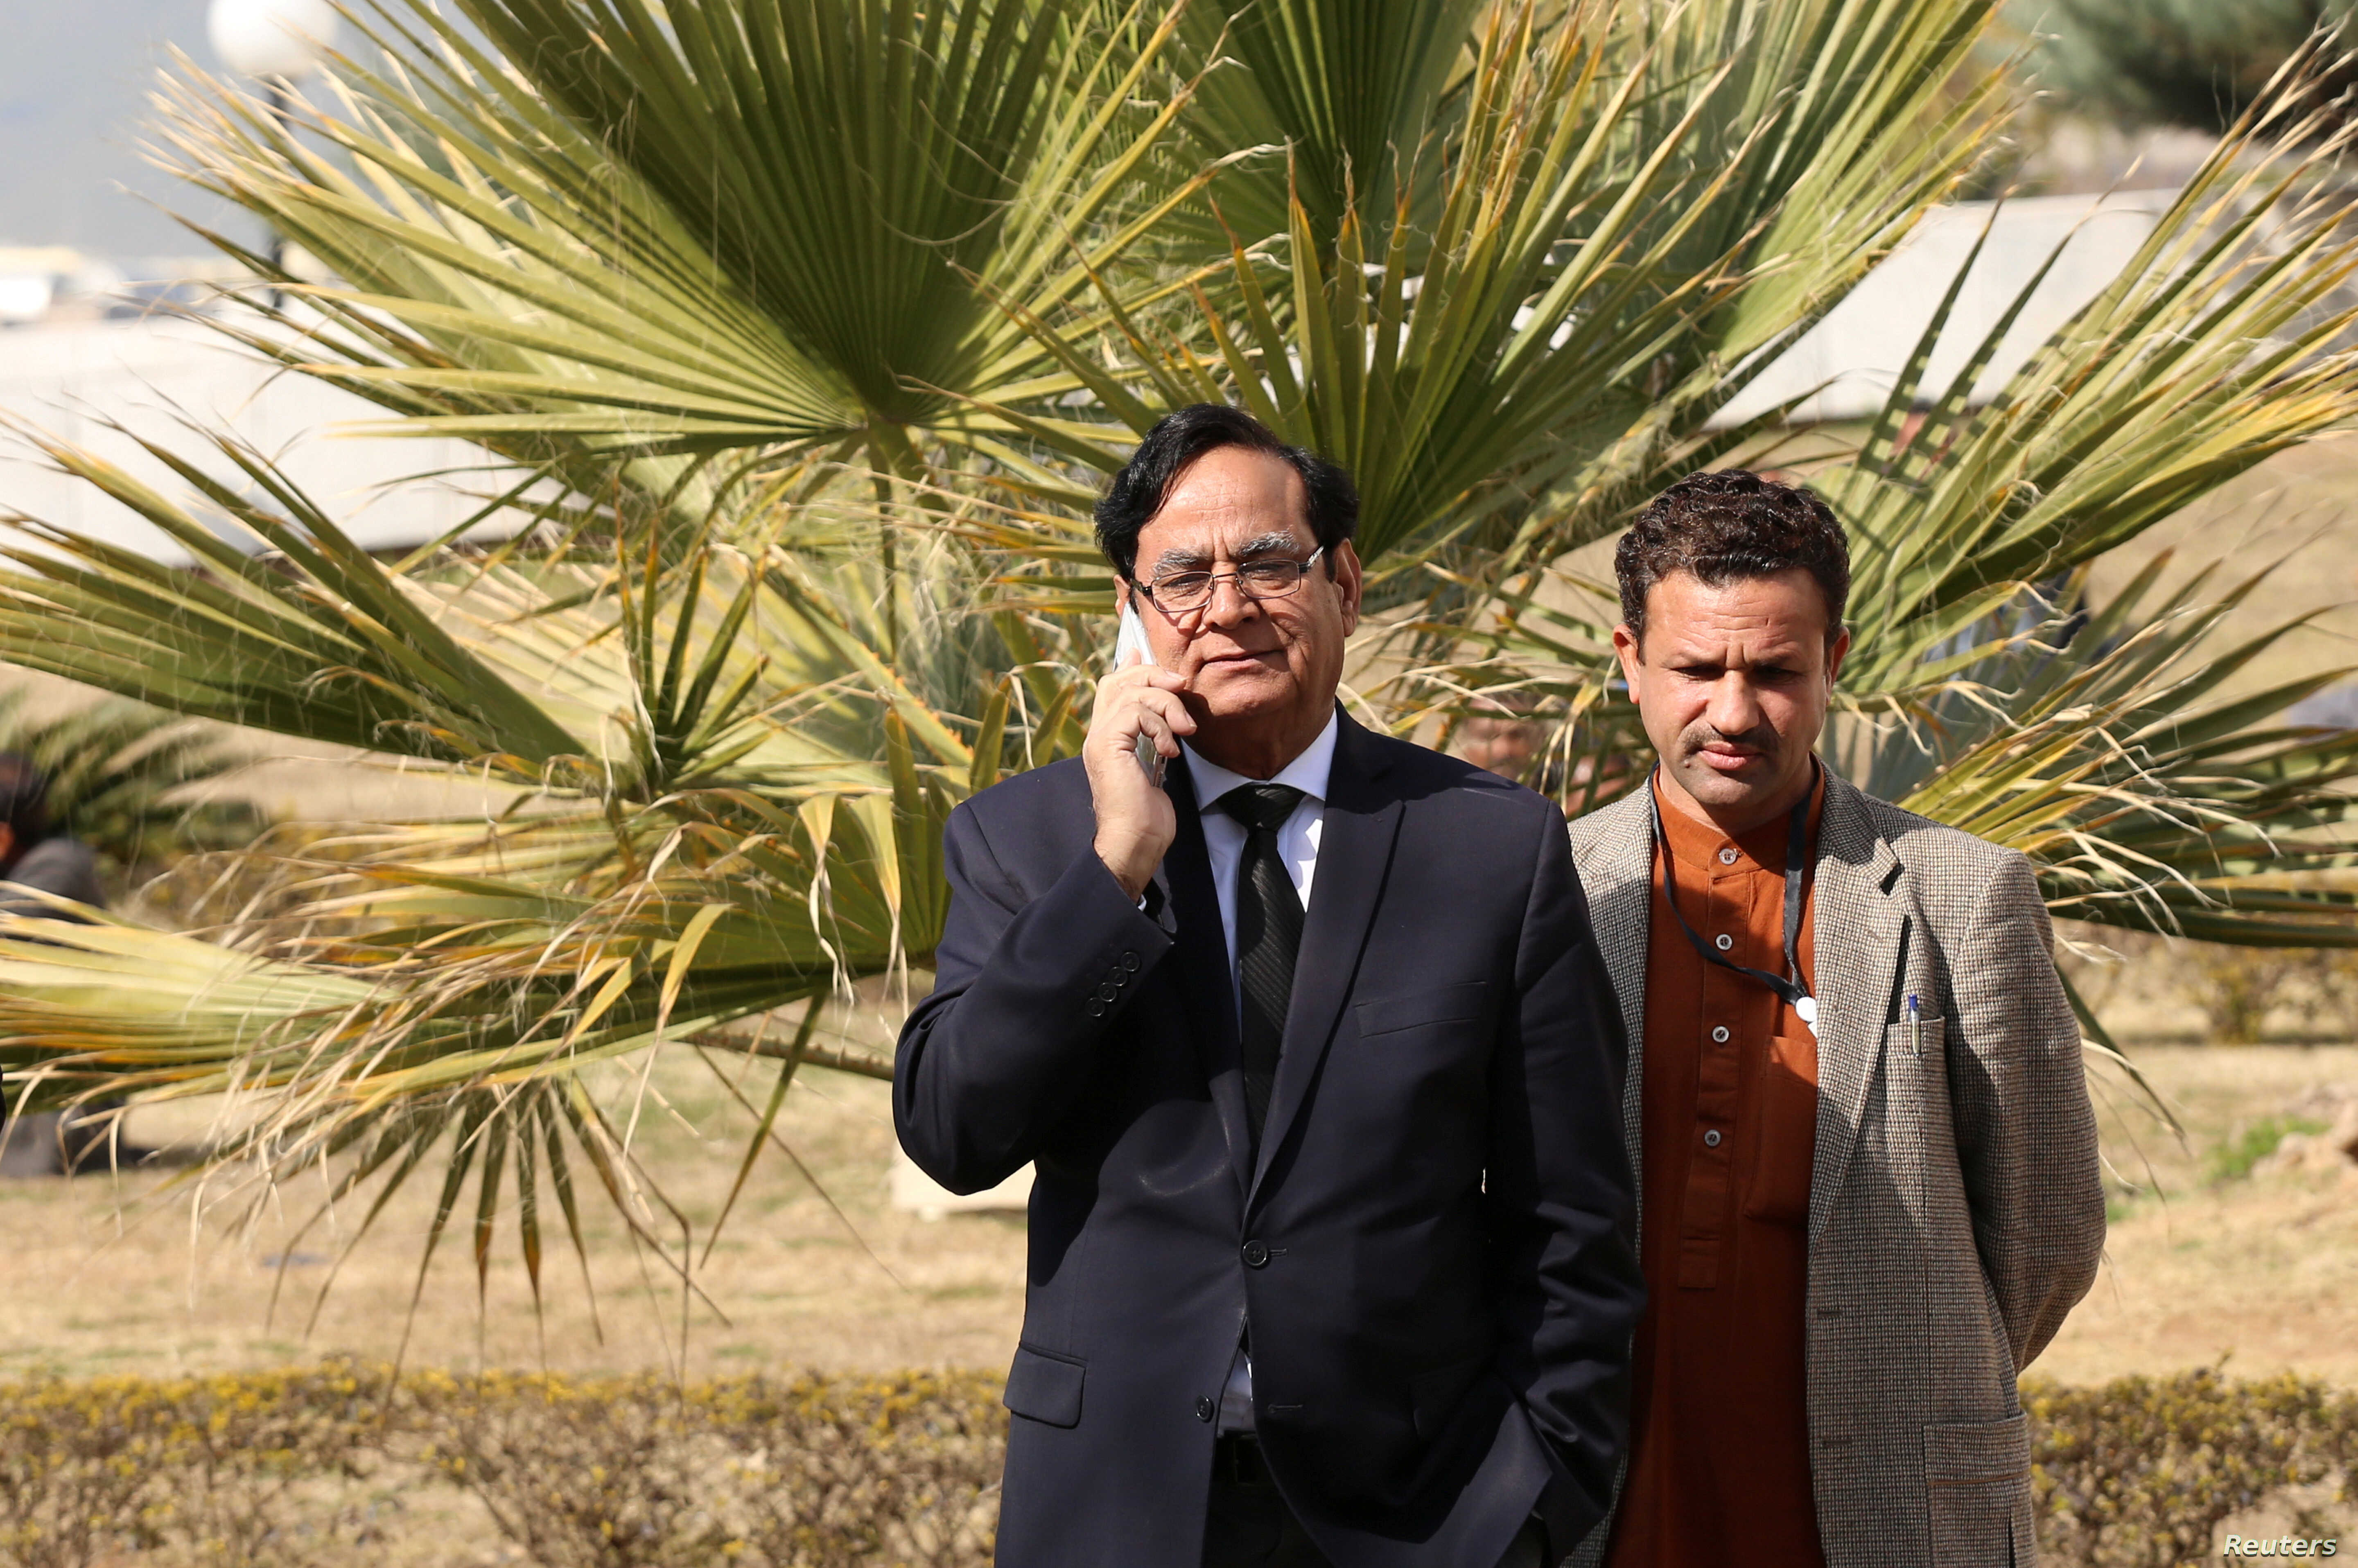 Saiful Mulook (L), lawyer for Asia Bibi, a Pakistani Christian acquitted of capital blasphemy charges, talks on a mobile phone at the premises of the Supreme Court in Islamabad, Jan. 29, 2019.